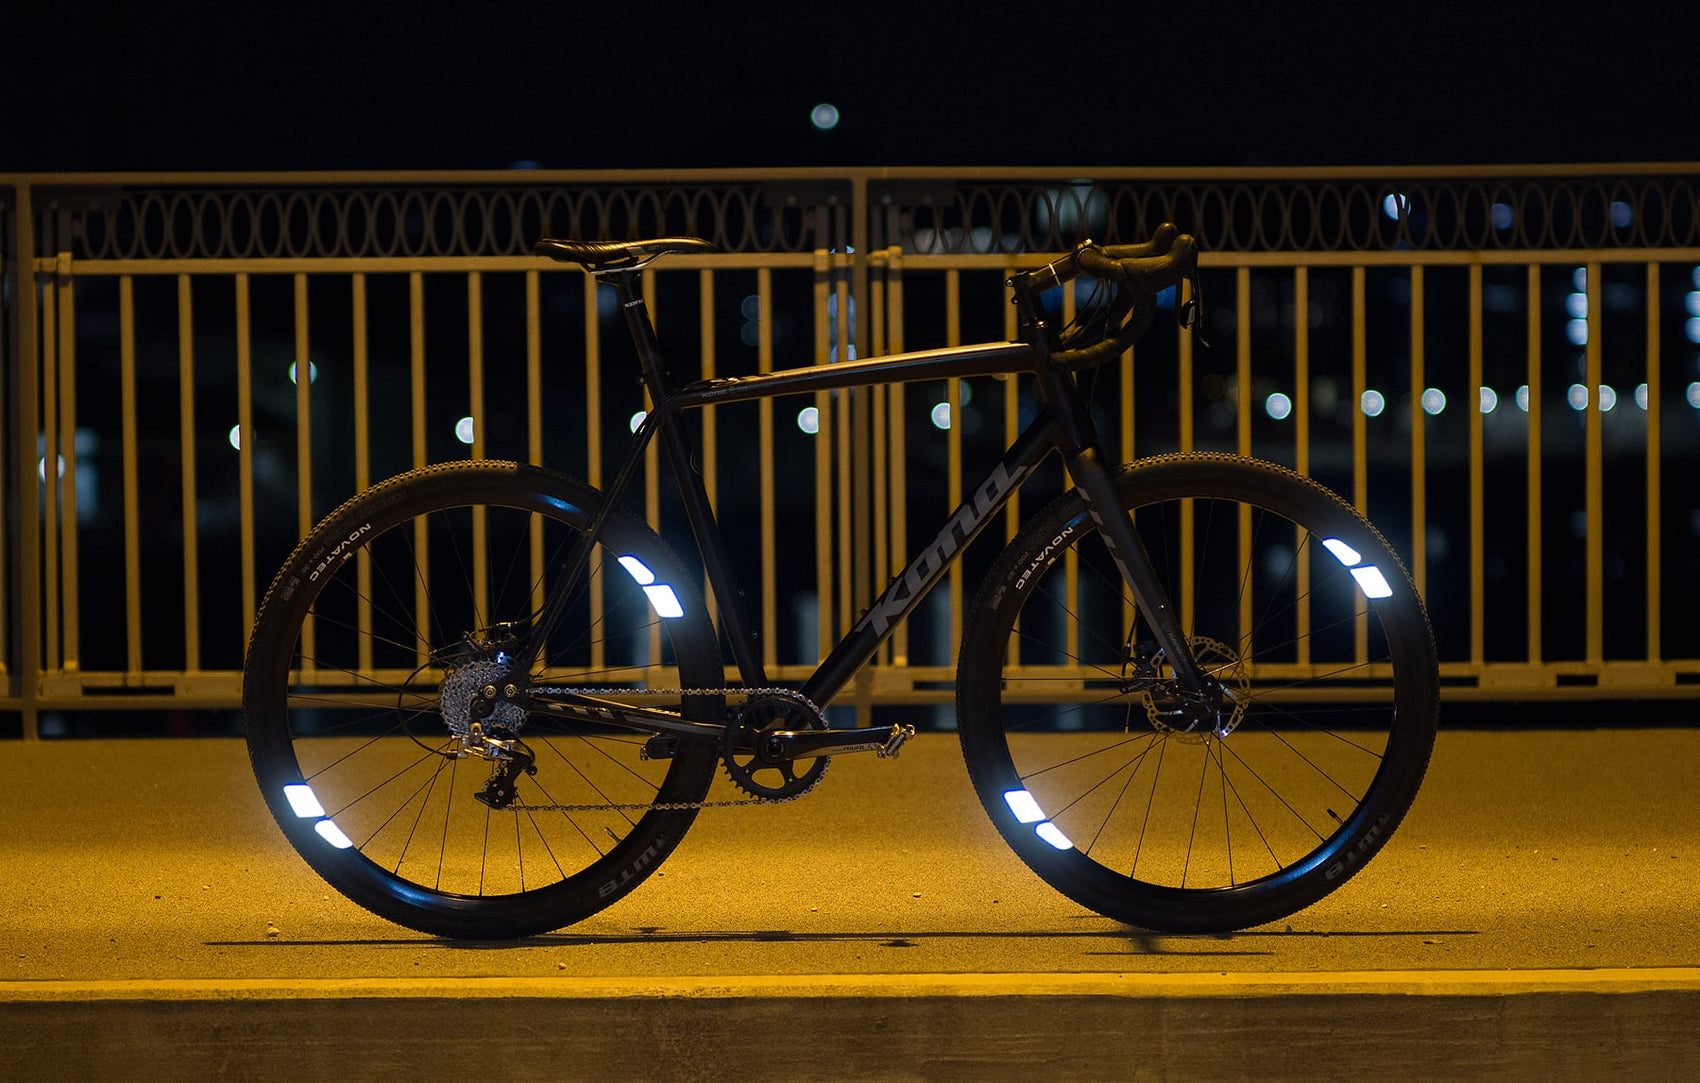 FLECTR 360 – the bike reflector with 360° visibility by The Outsider